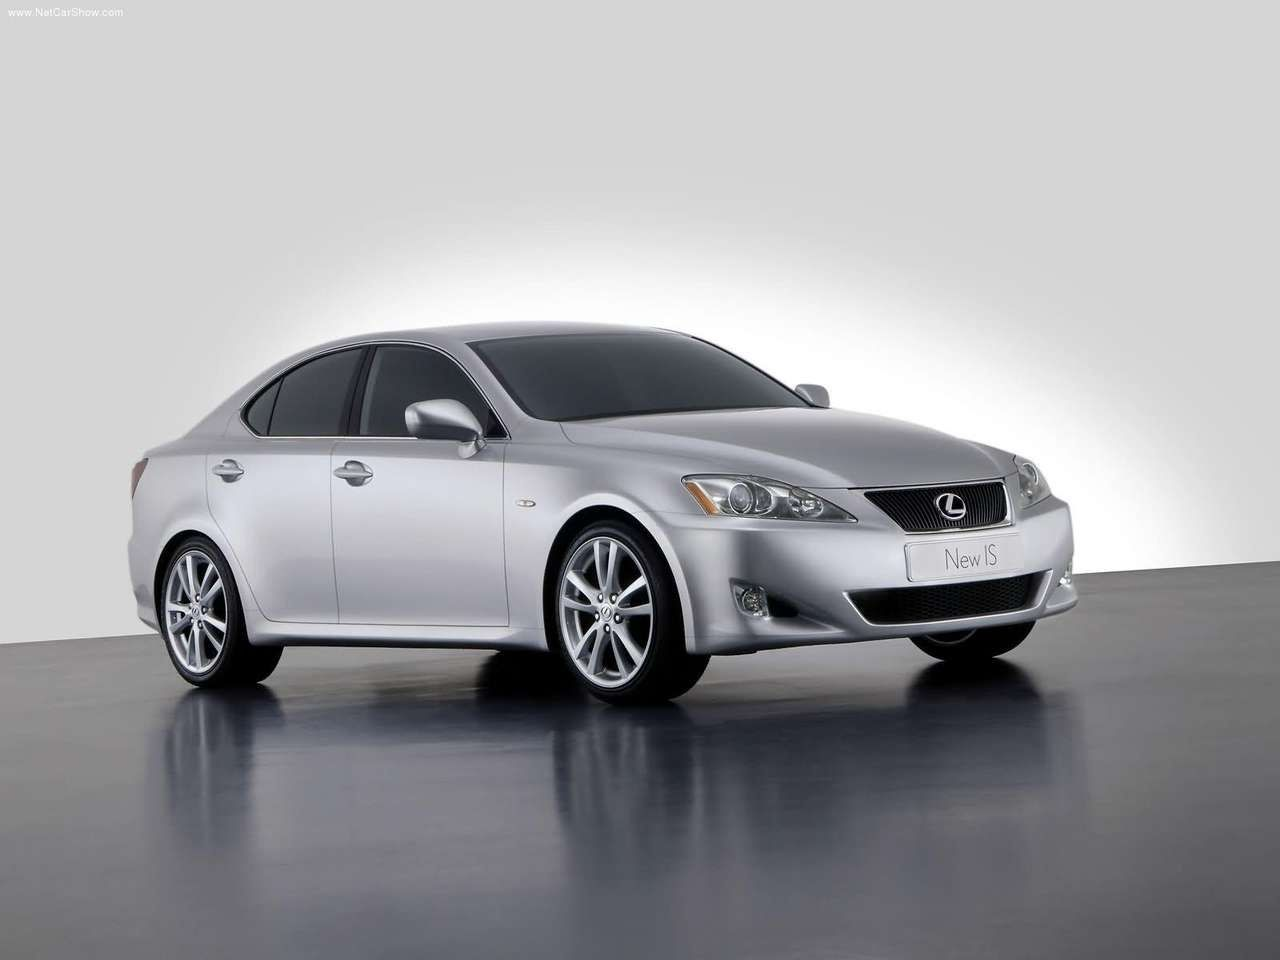 small resolution of enjoy free pdf download of electrical wiring diagram for lexus is250 220d model 2005